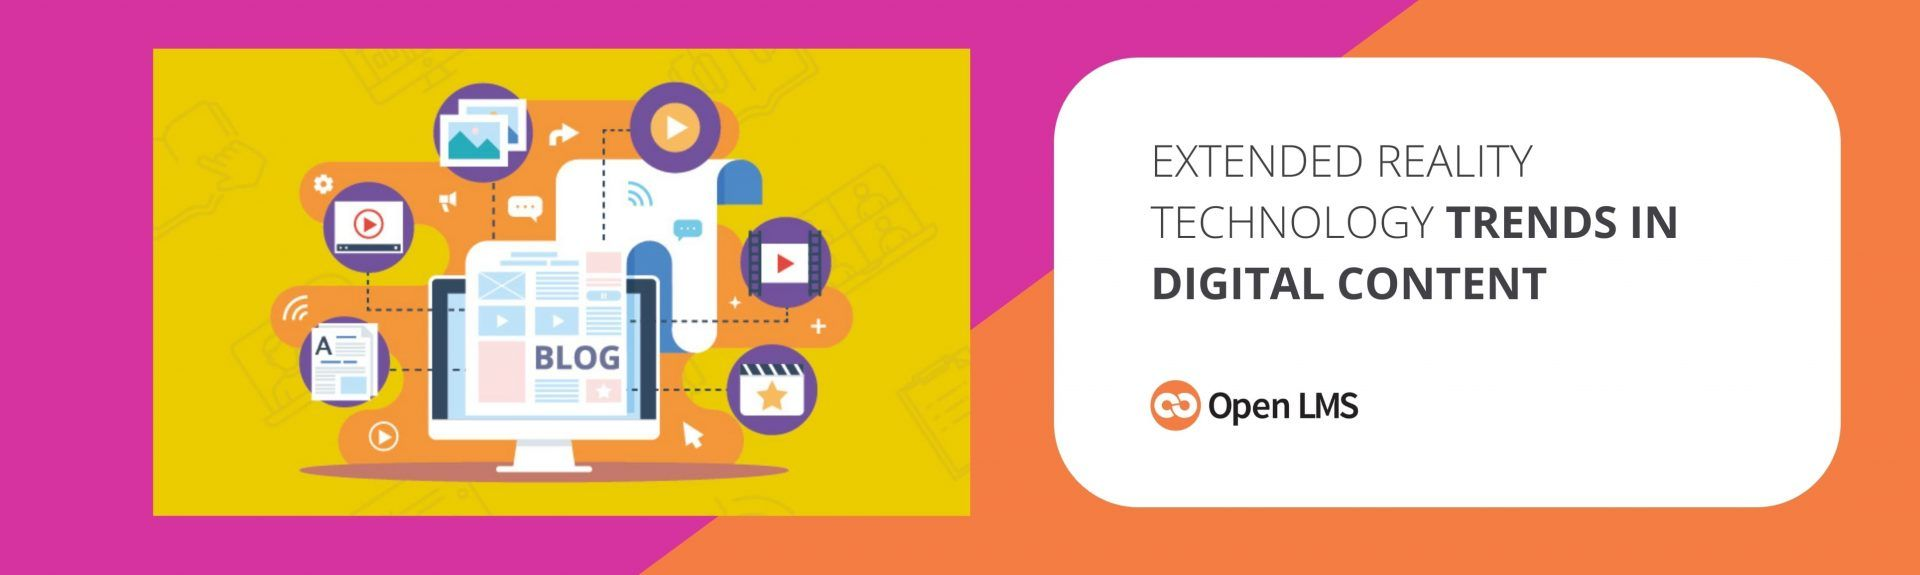 Extended Reality Technology Trends in Digital Content